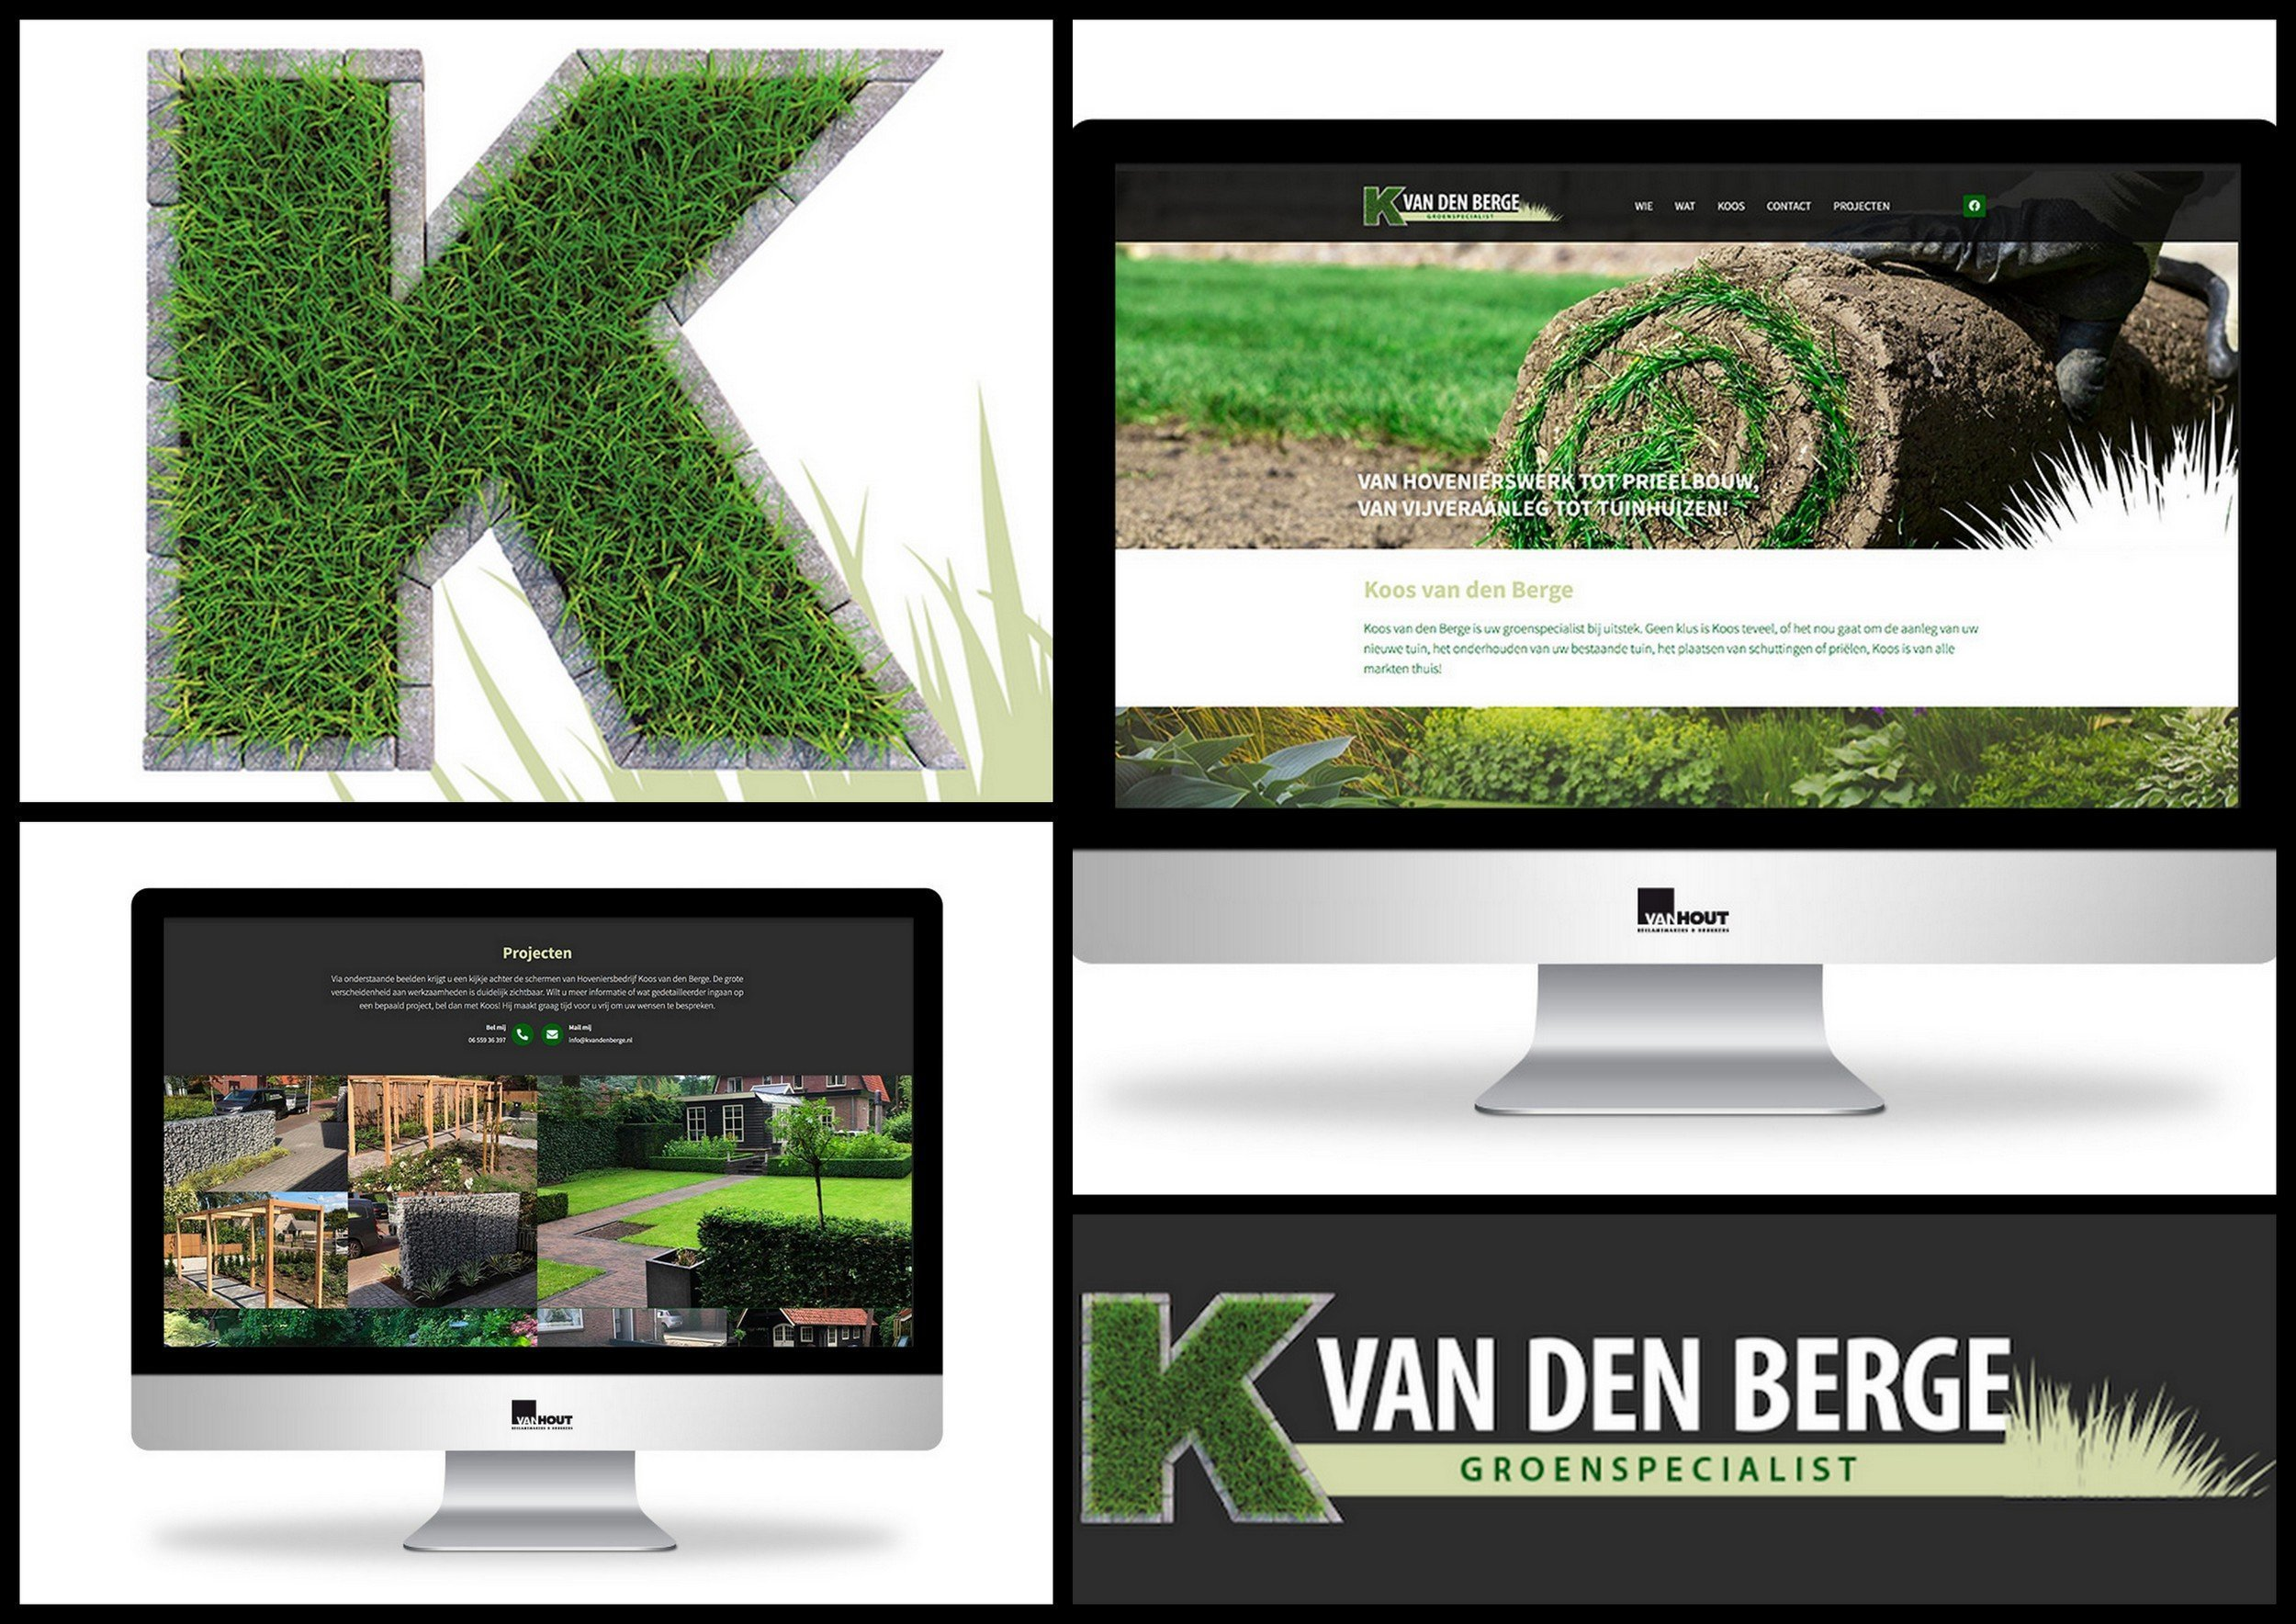 K van den berge website